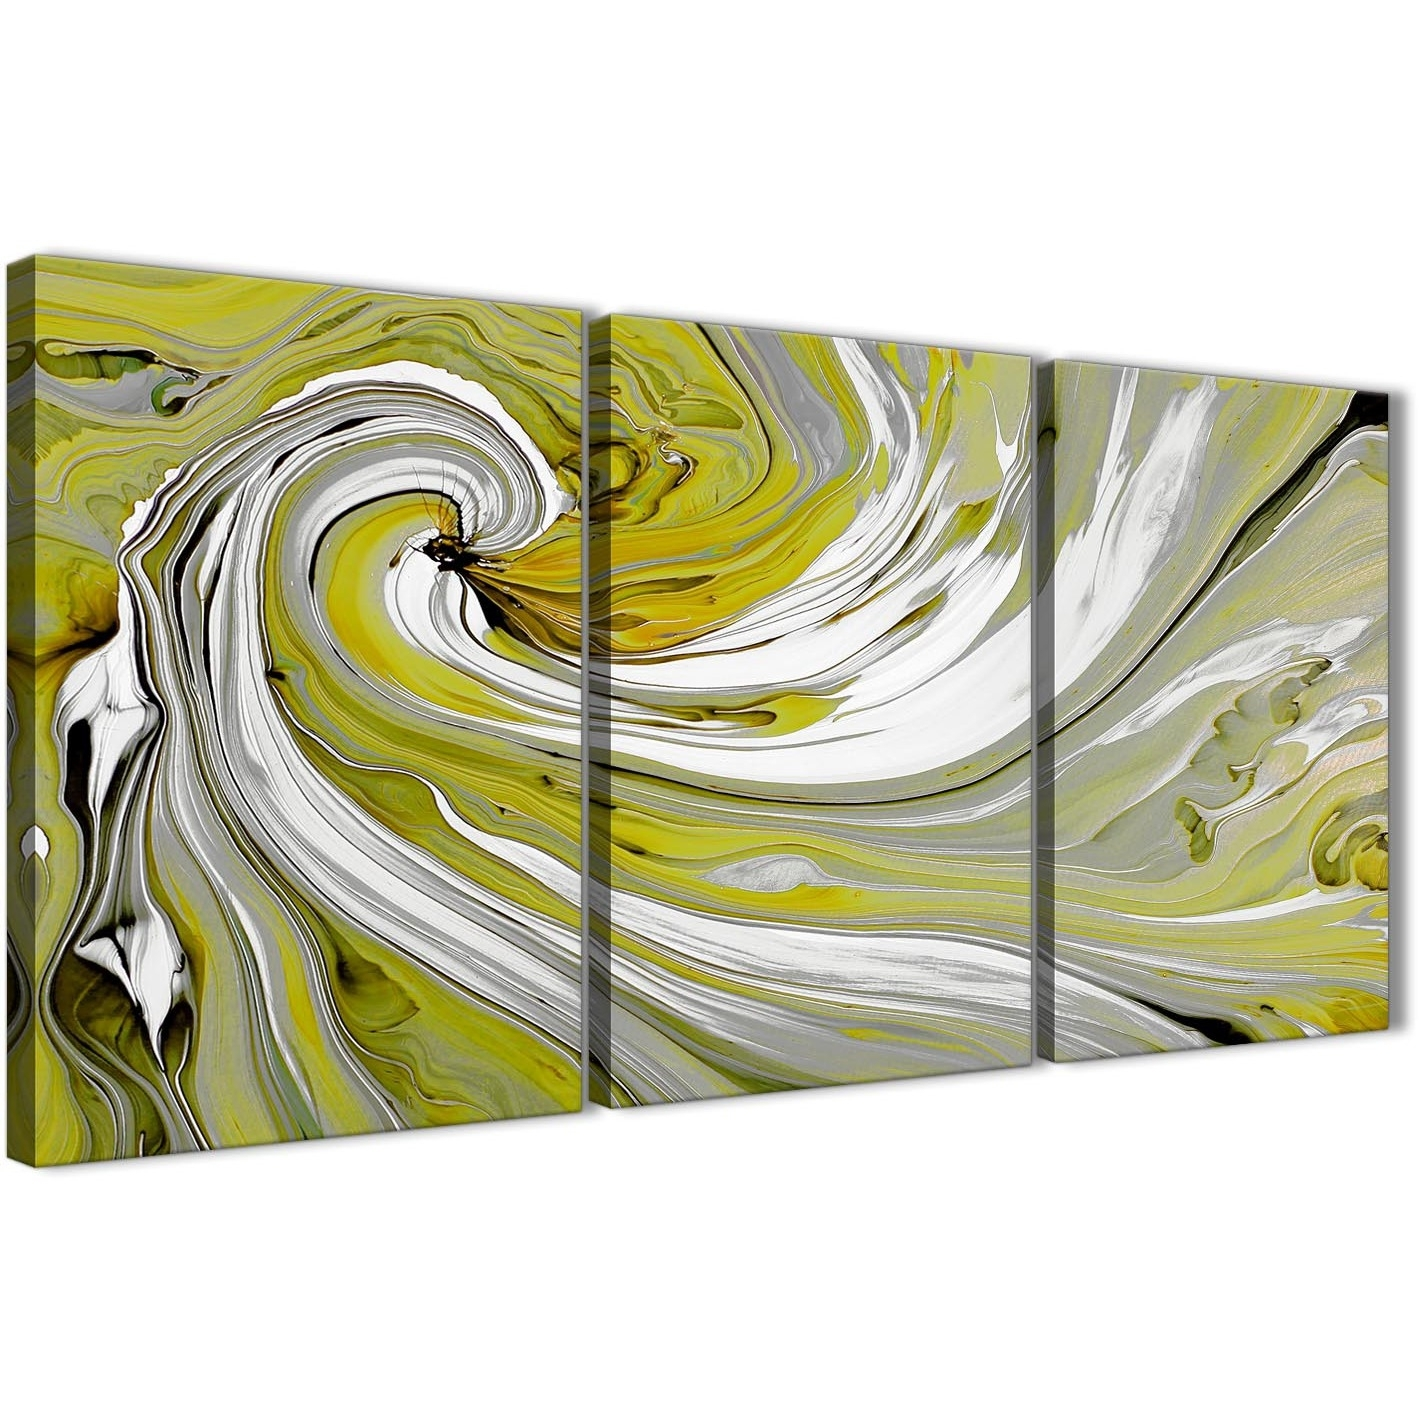 Lime Green Swirls Modern Abstract Canvas Wall Art – Split 3 Piece Within Most Up To Date Lime Green Abstract Wall Art (View 9 of 20)